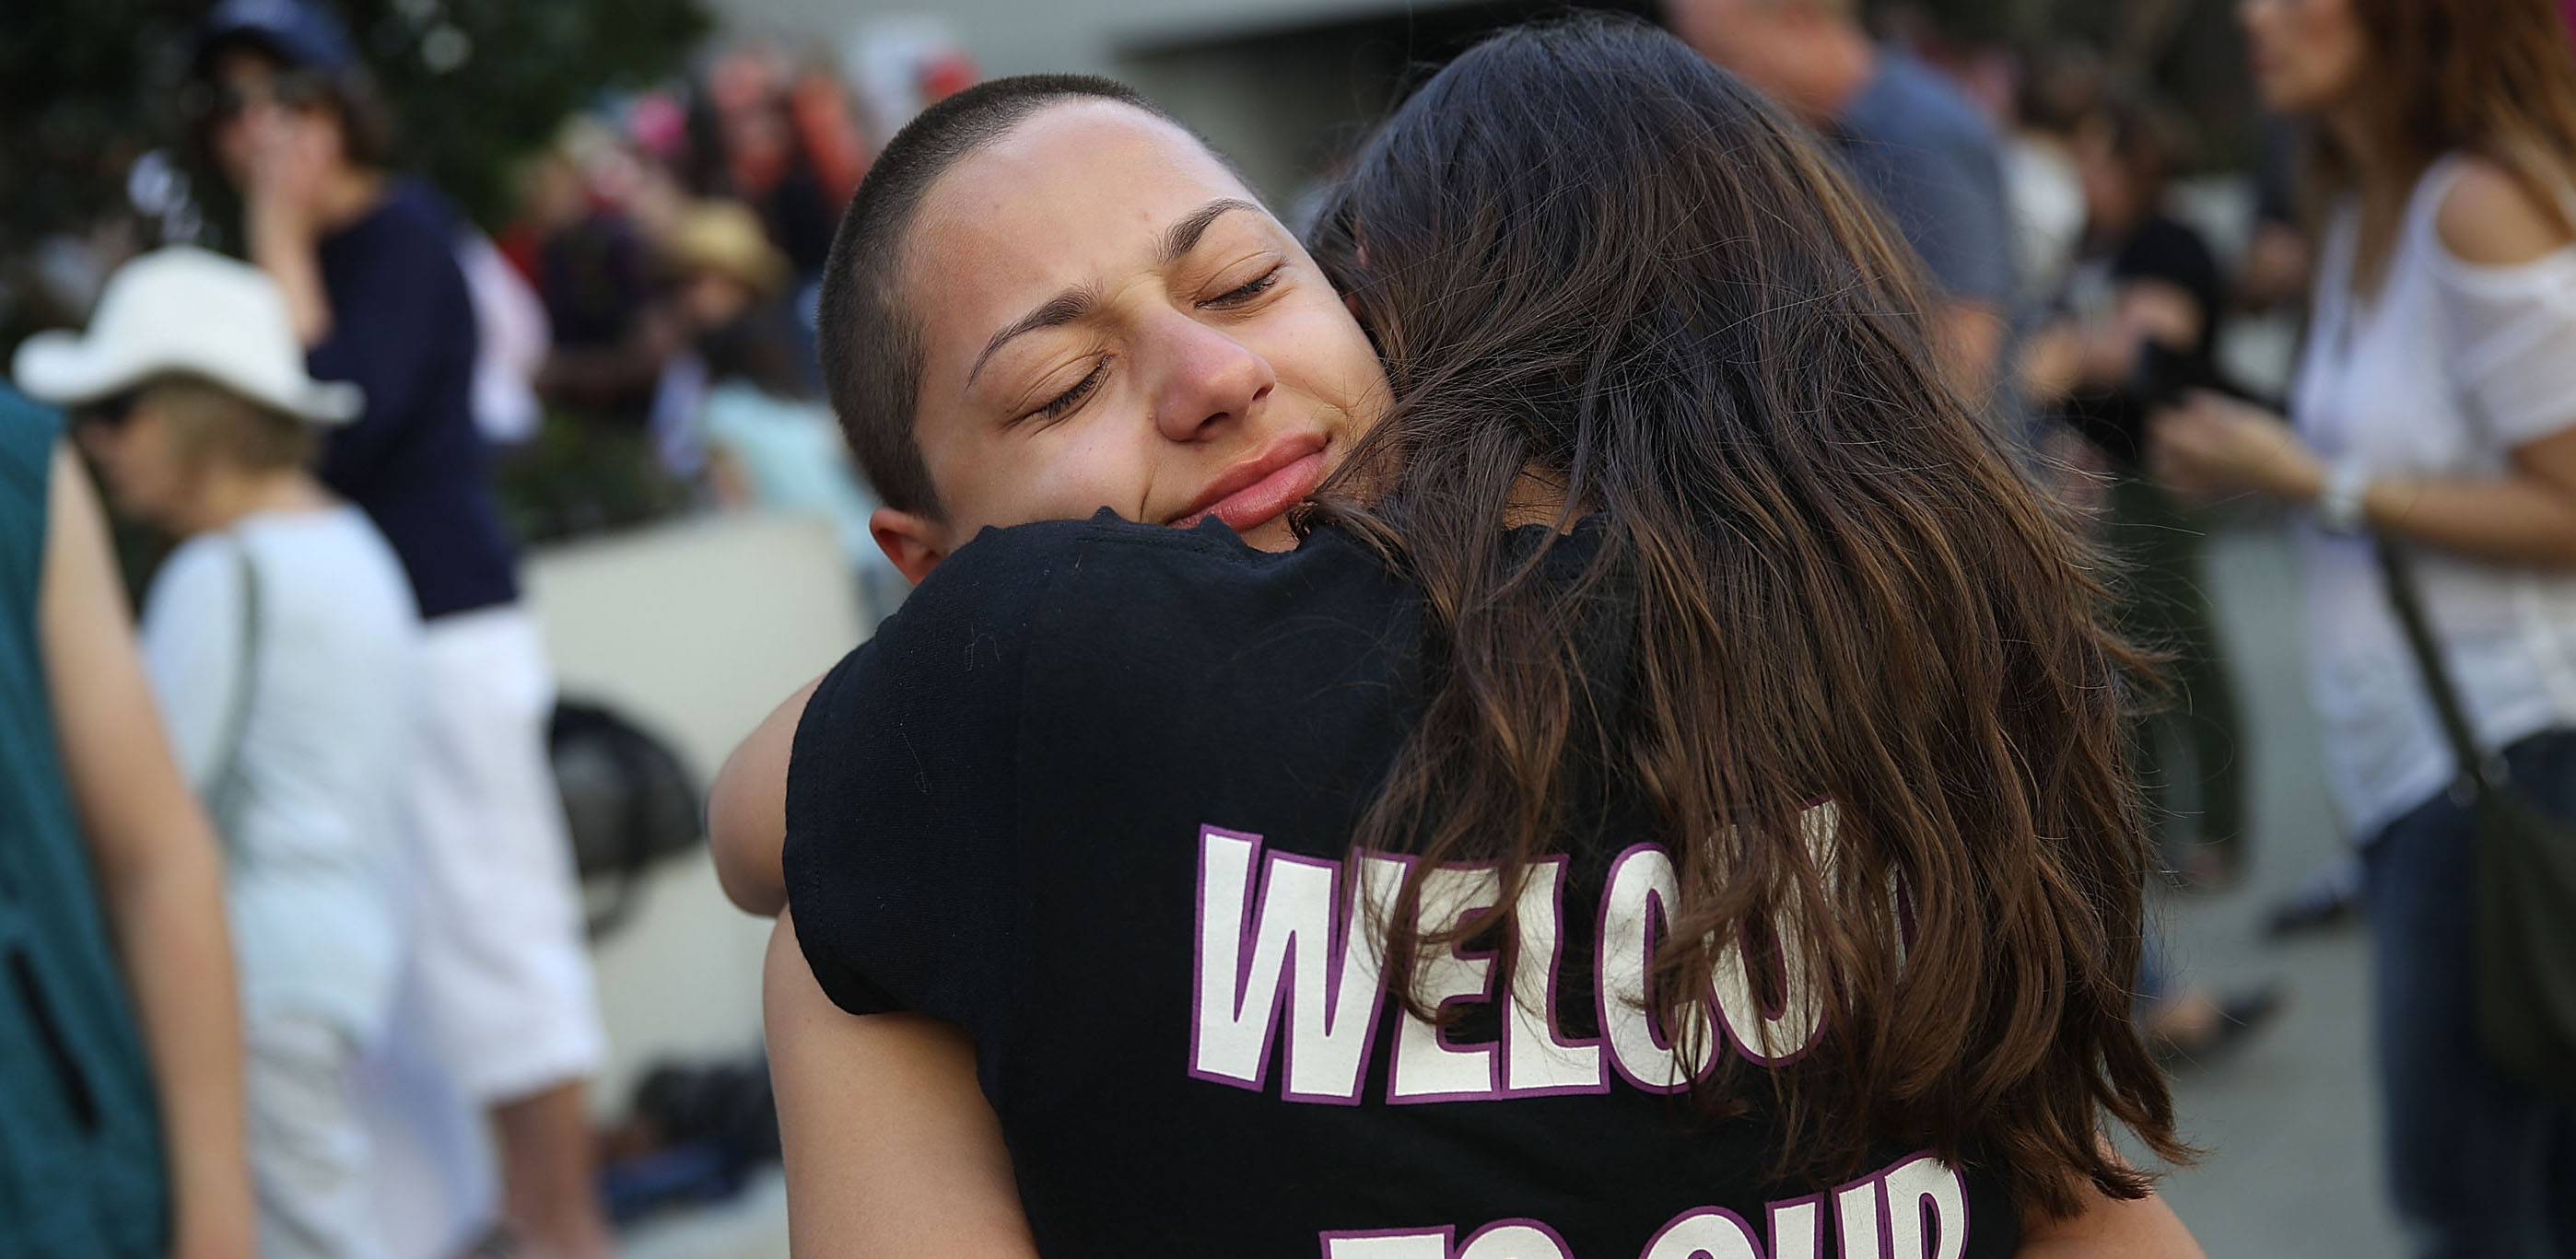 School Shooting Survivor Emma González Is Leading the New Gun Control Movement